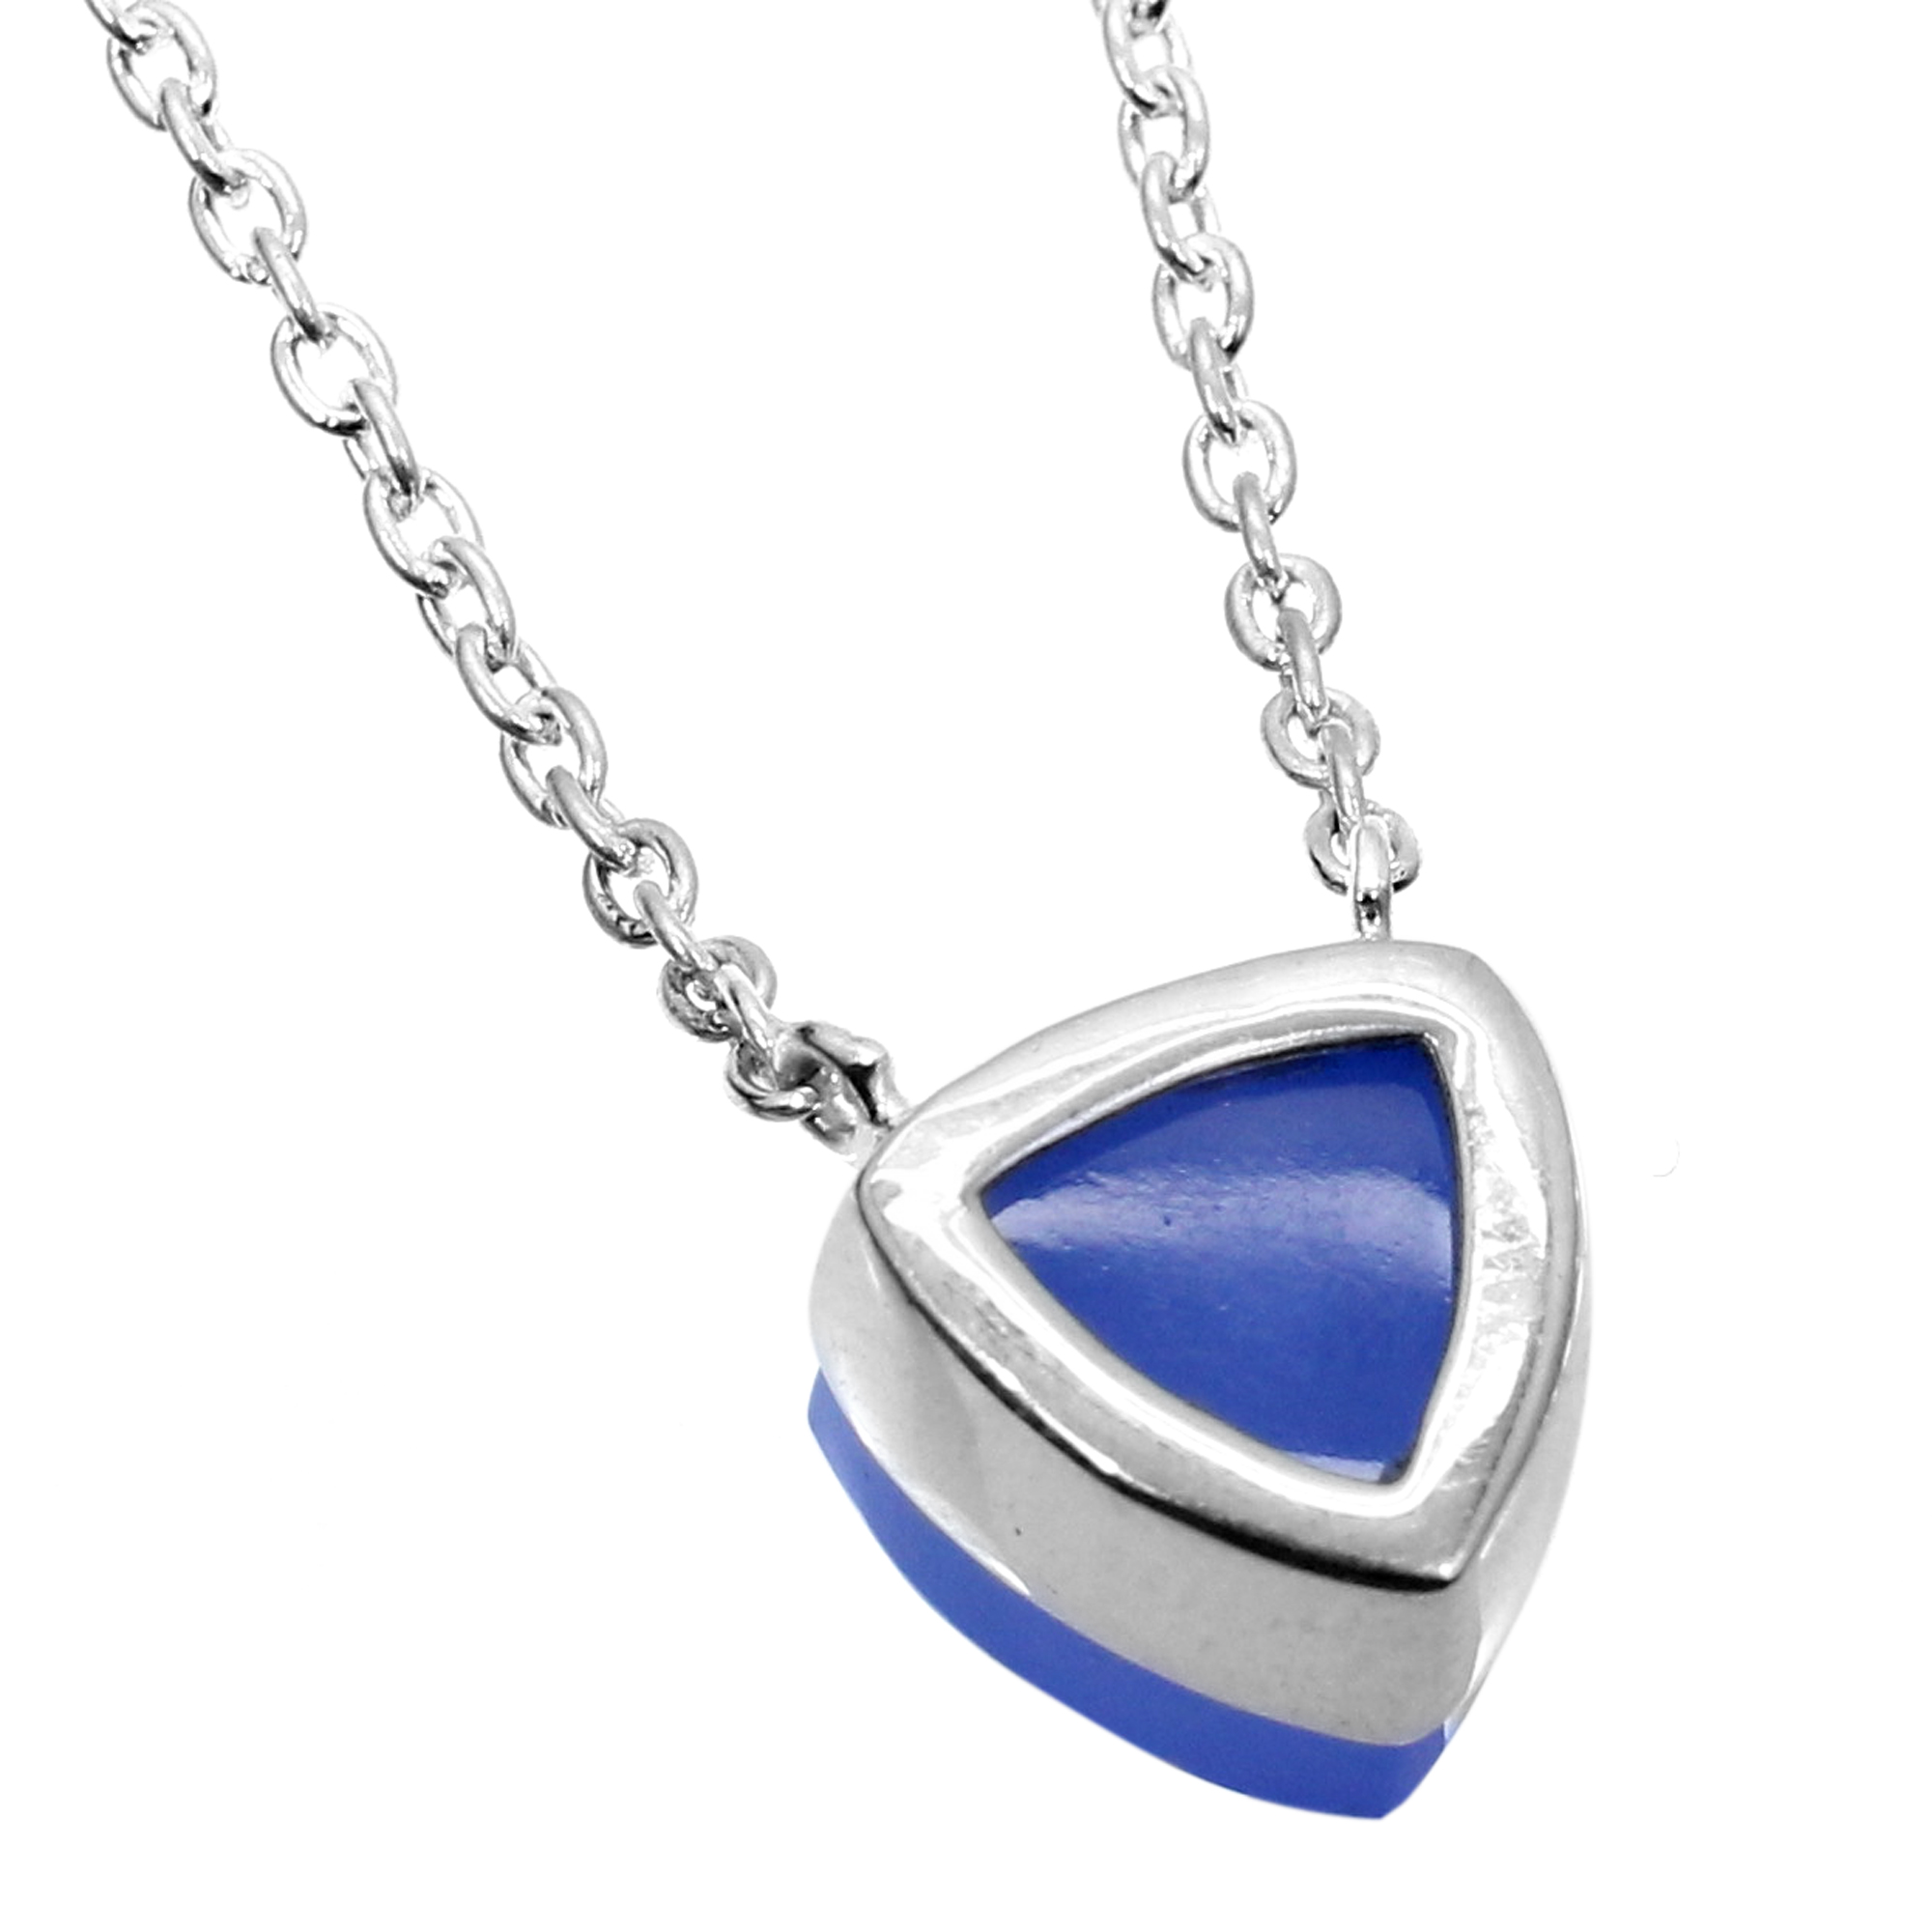 Blue Chalcedony 925 Sterling Silver Long Chain Necklace